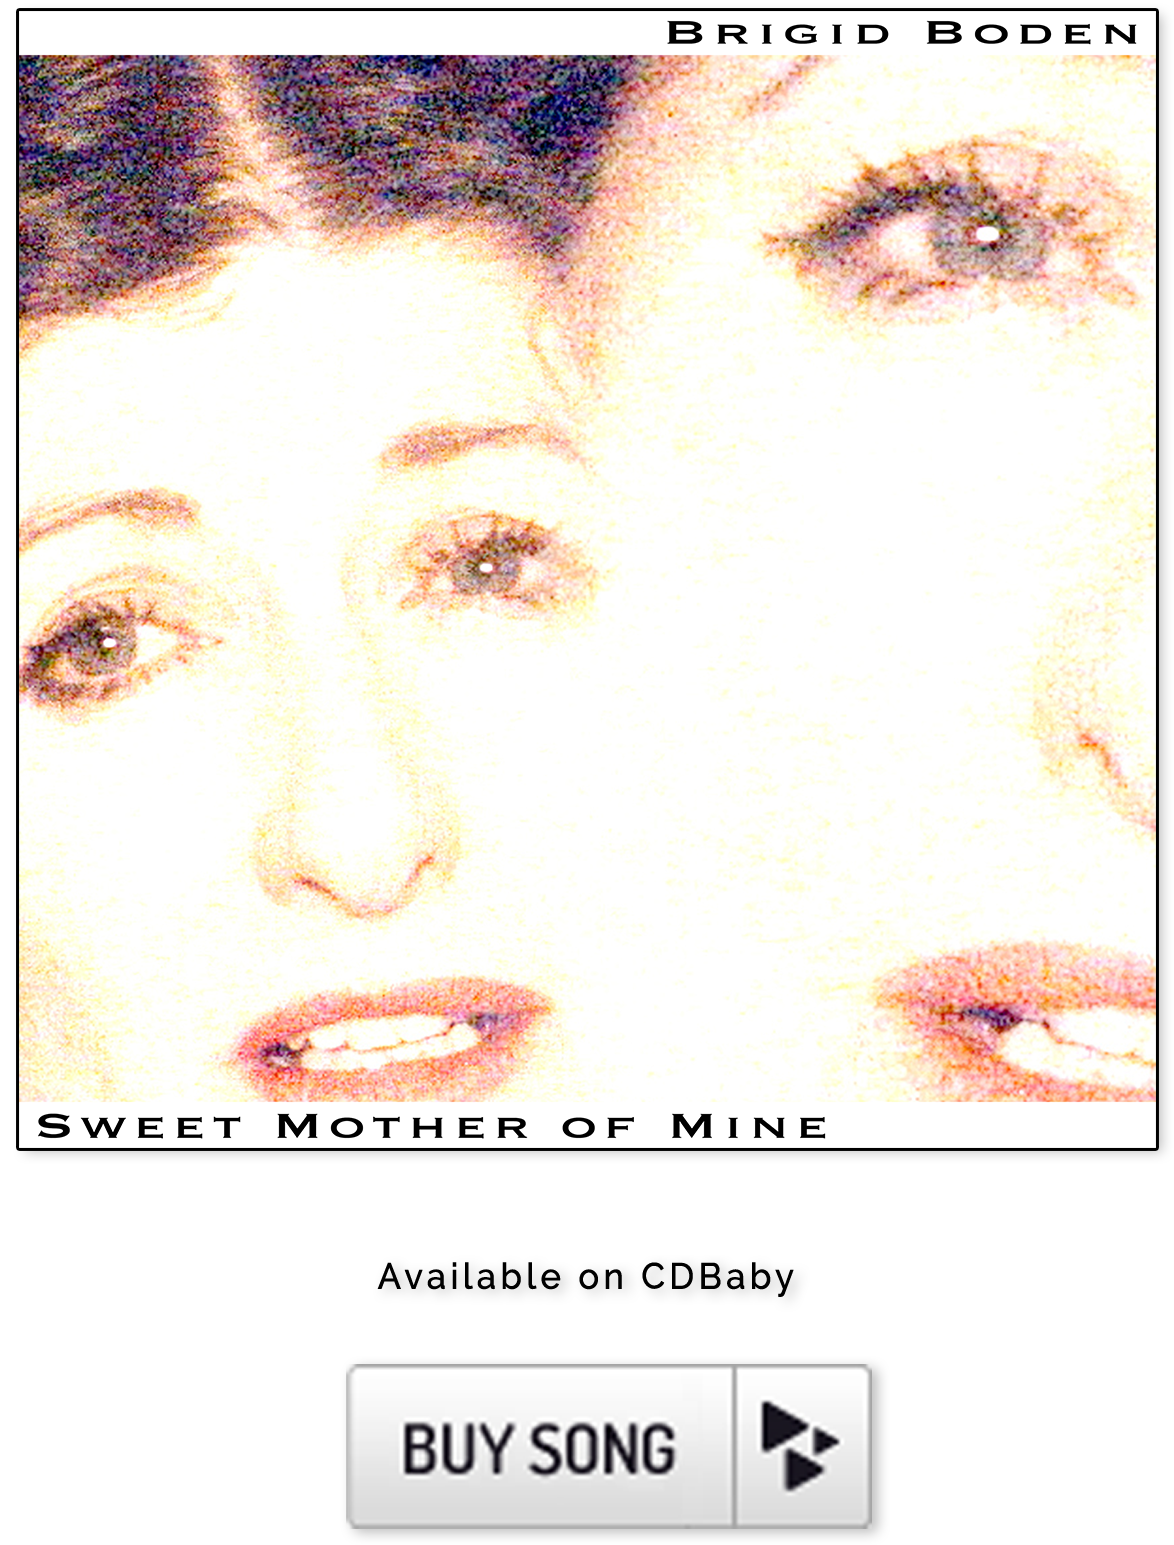 Brigid-Boden-Sweet-Mother-Of-Mine-Buy-Song-Image-and-Button-600.png